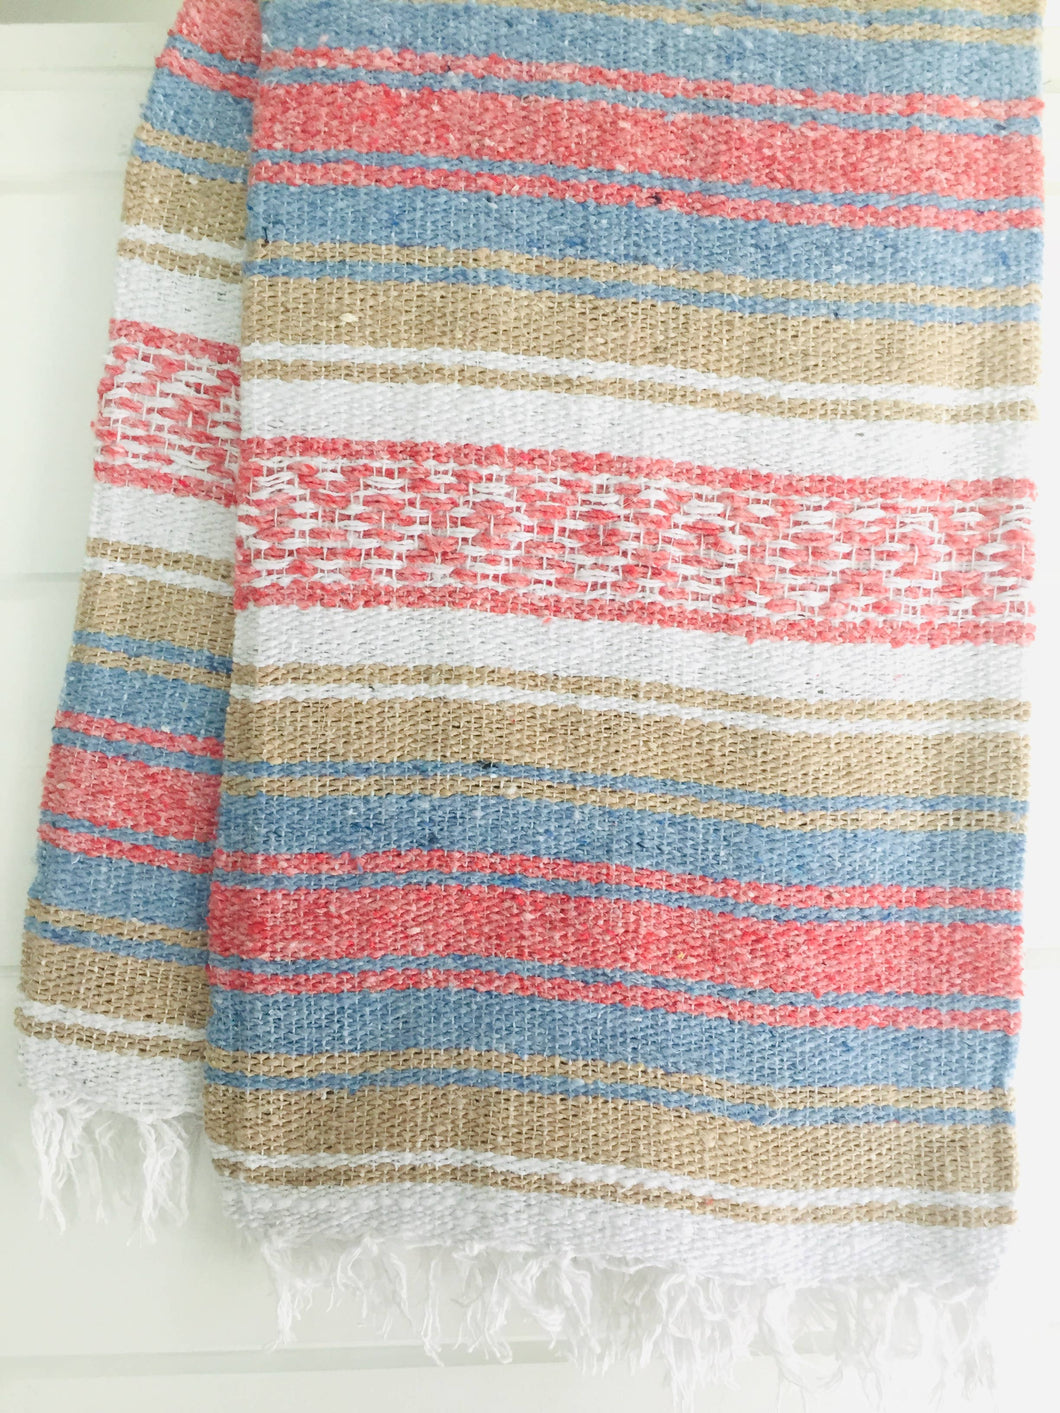 Sea Gypsy California - Pacific Point Beach Blanket l Mexican Blanket l Throw